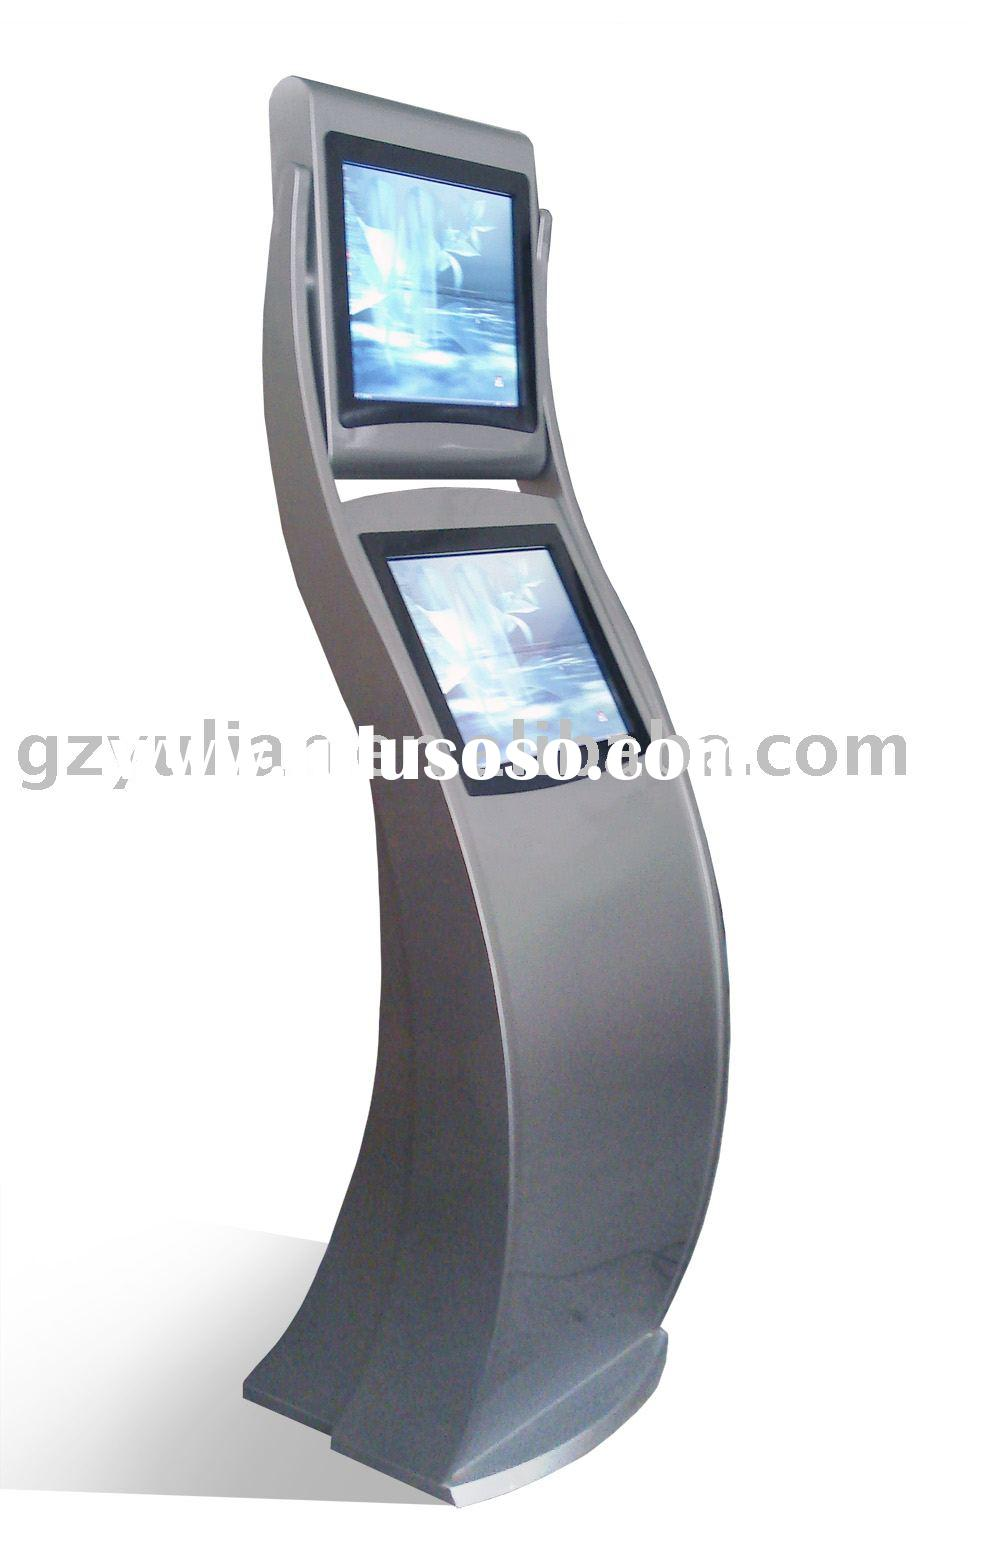 service Kiosk (ATM)/ dual screen kiosk/ kiosk terminal/ photo kiosk/kiosk keyboard